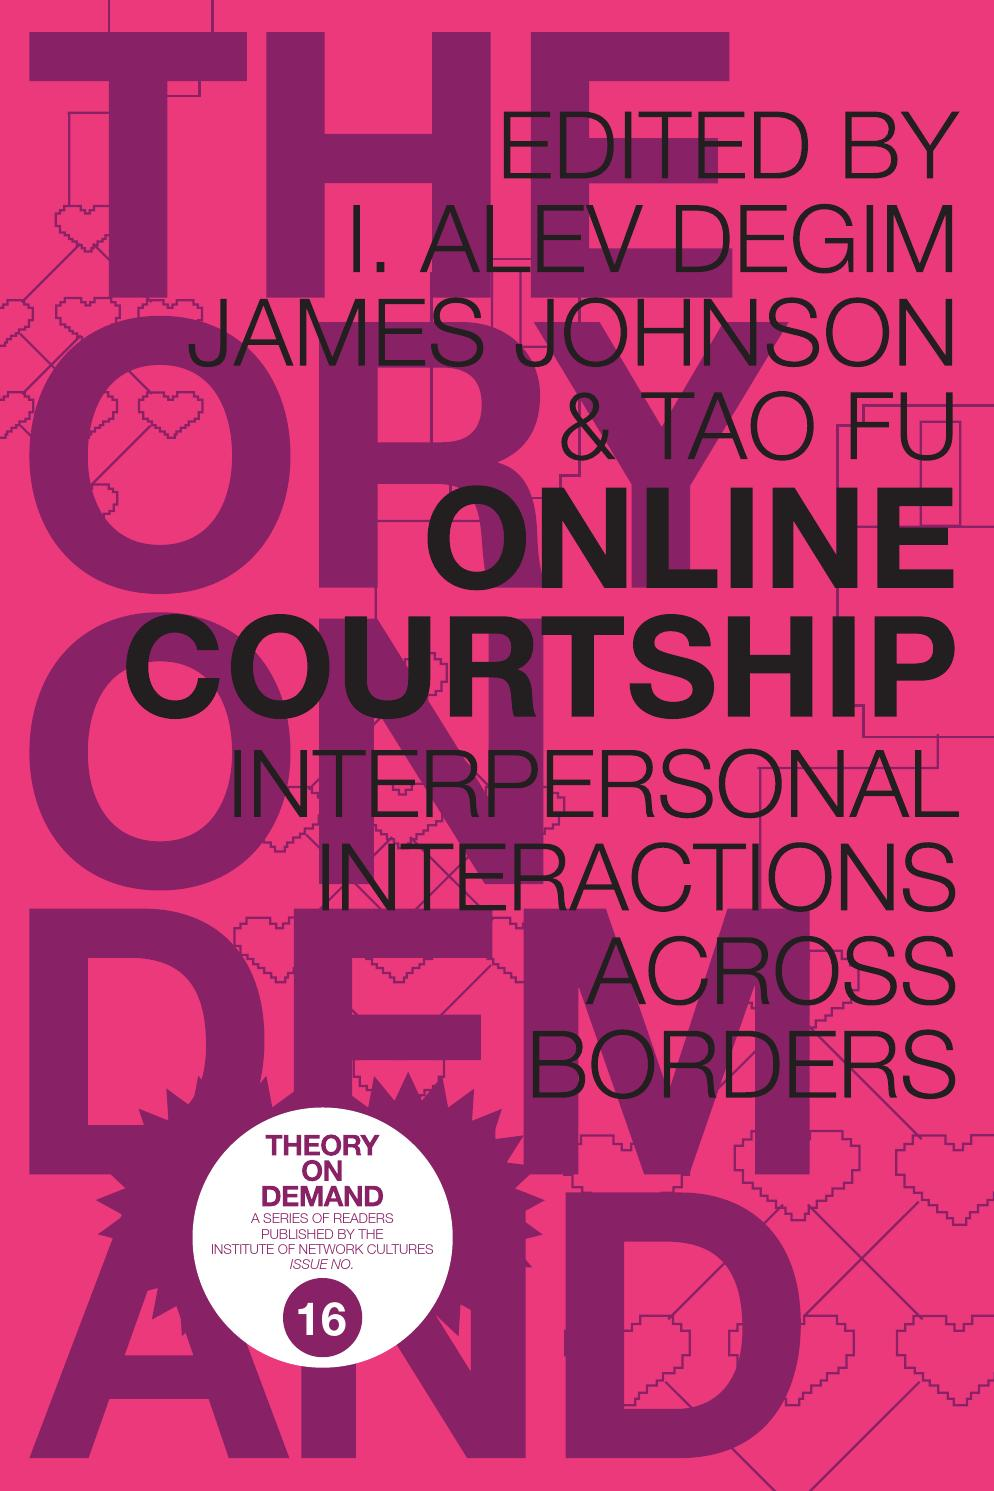 Online Courtship: Interpersonal Interactions Across Borders